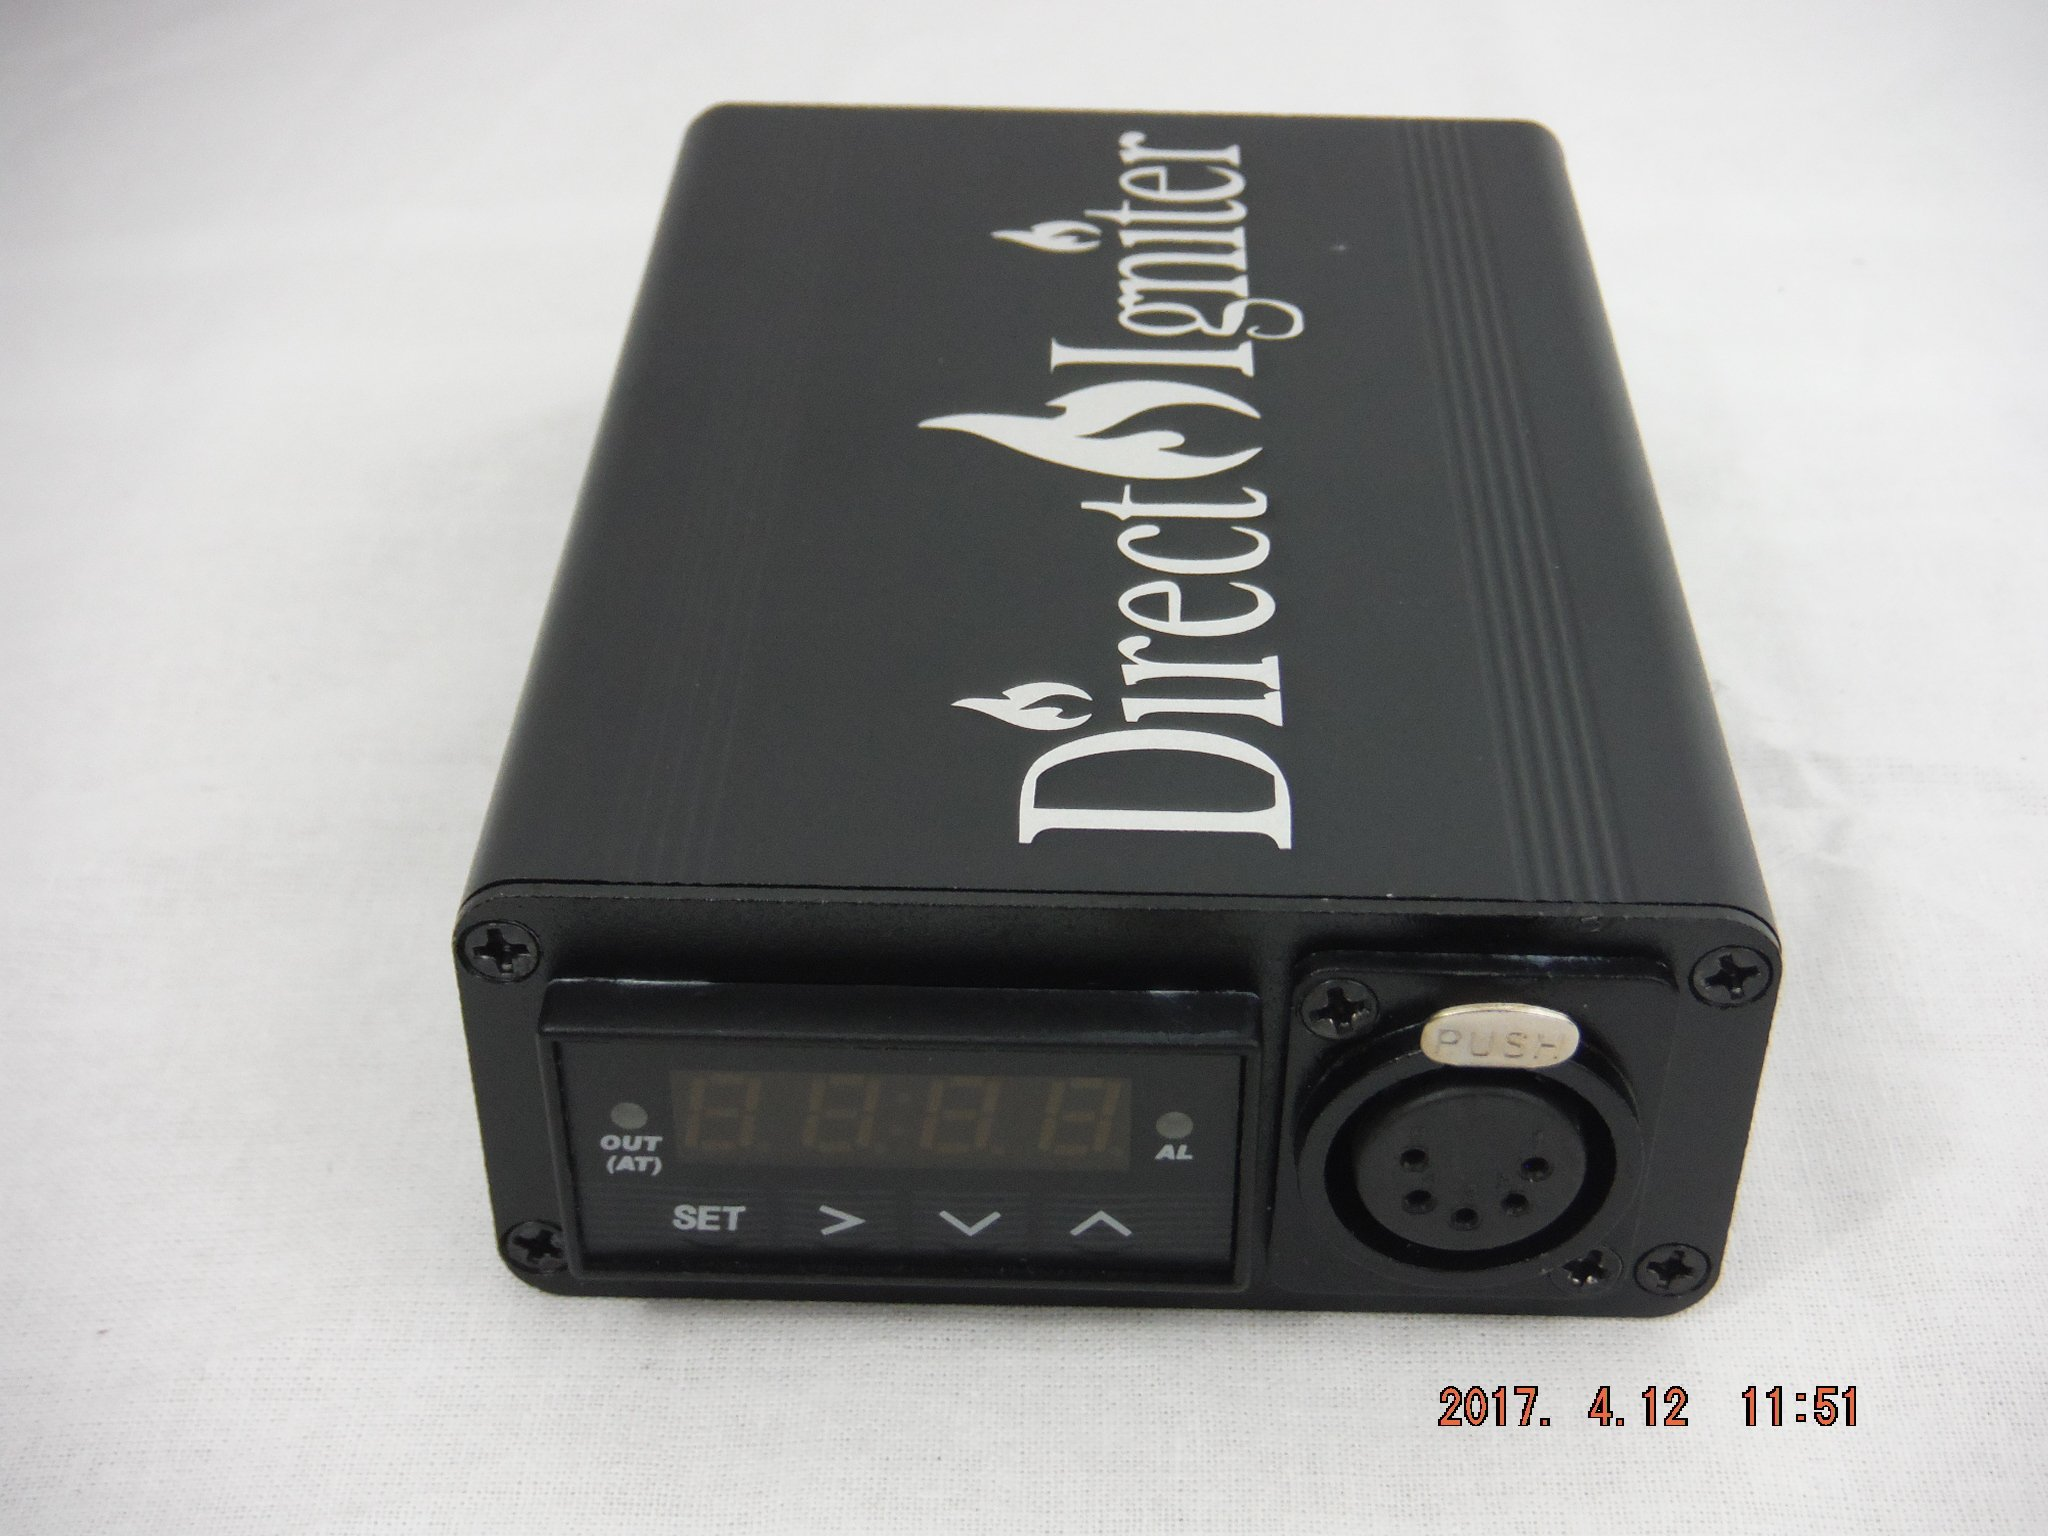 DIRECT IGNITER CLASSIC Aromatherapy Difuser WITH PID TEMPERATURE CONTROL PLUS ACCESSORIES by DIRECT IGNITER (Image #2)